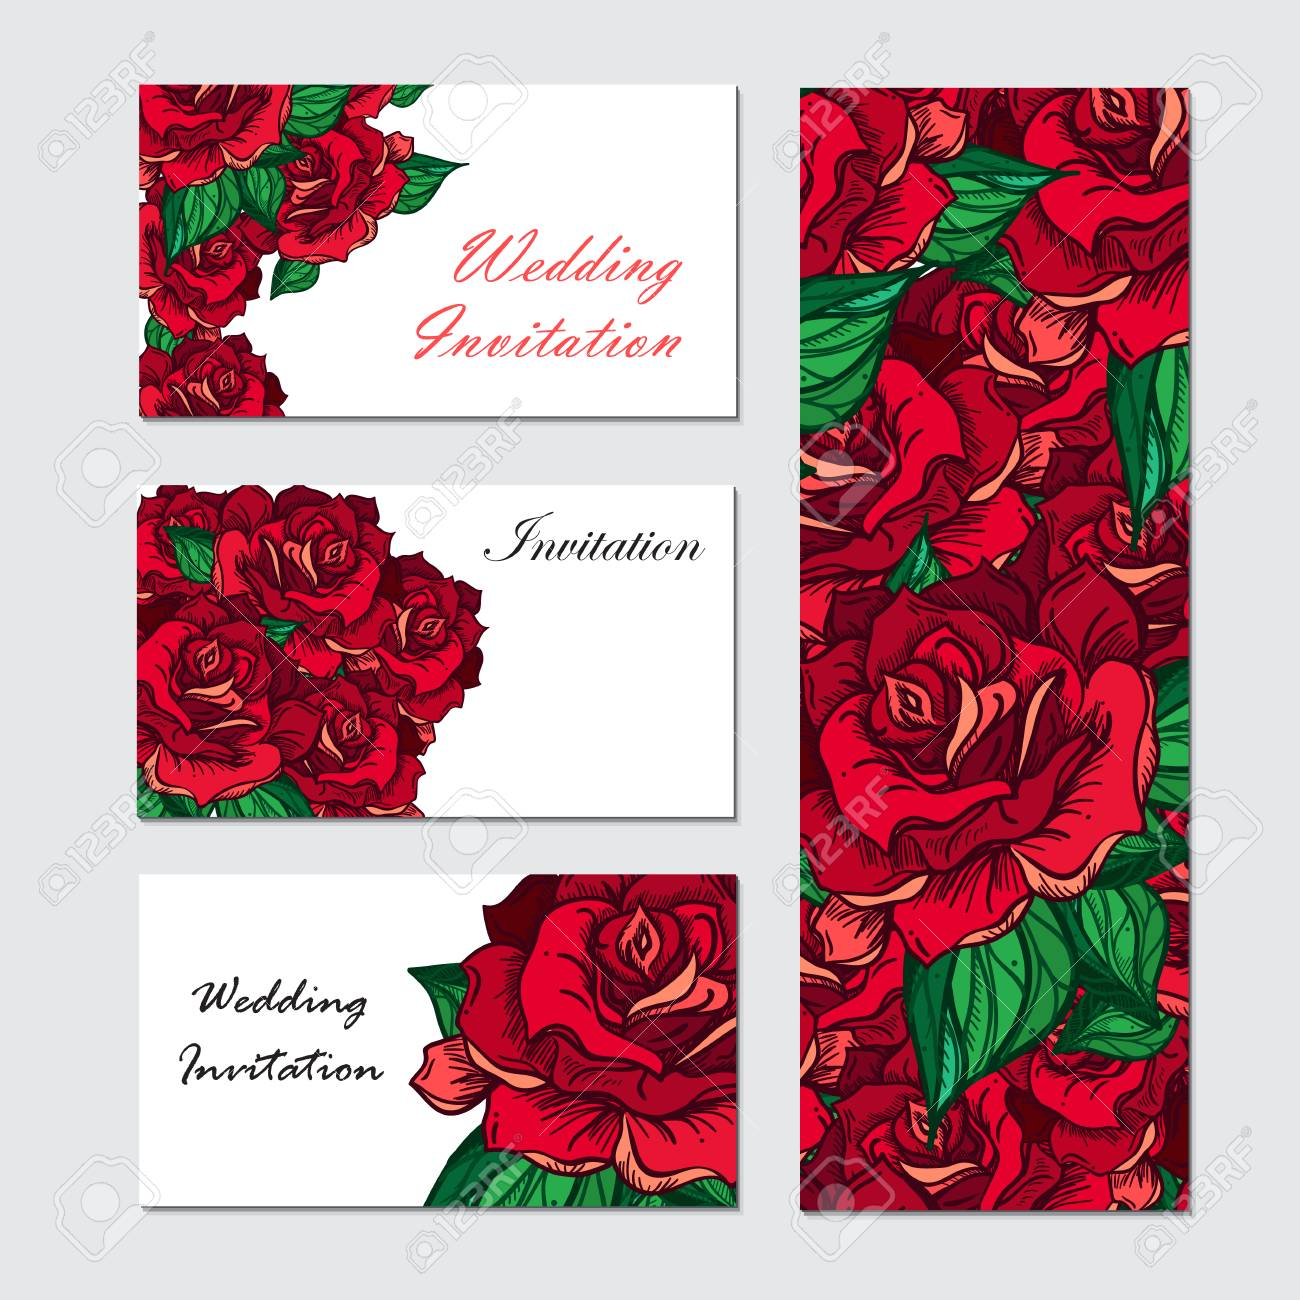 Hand Drawn Wedding Rose Invitation. Flower Template For Wedding ...